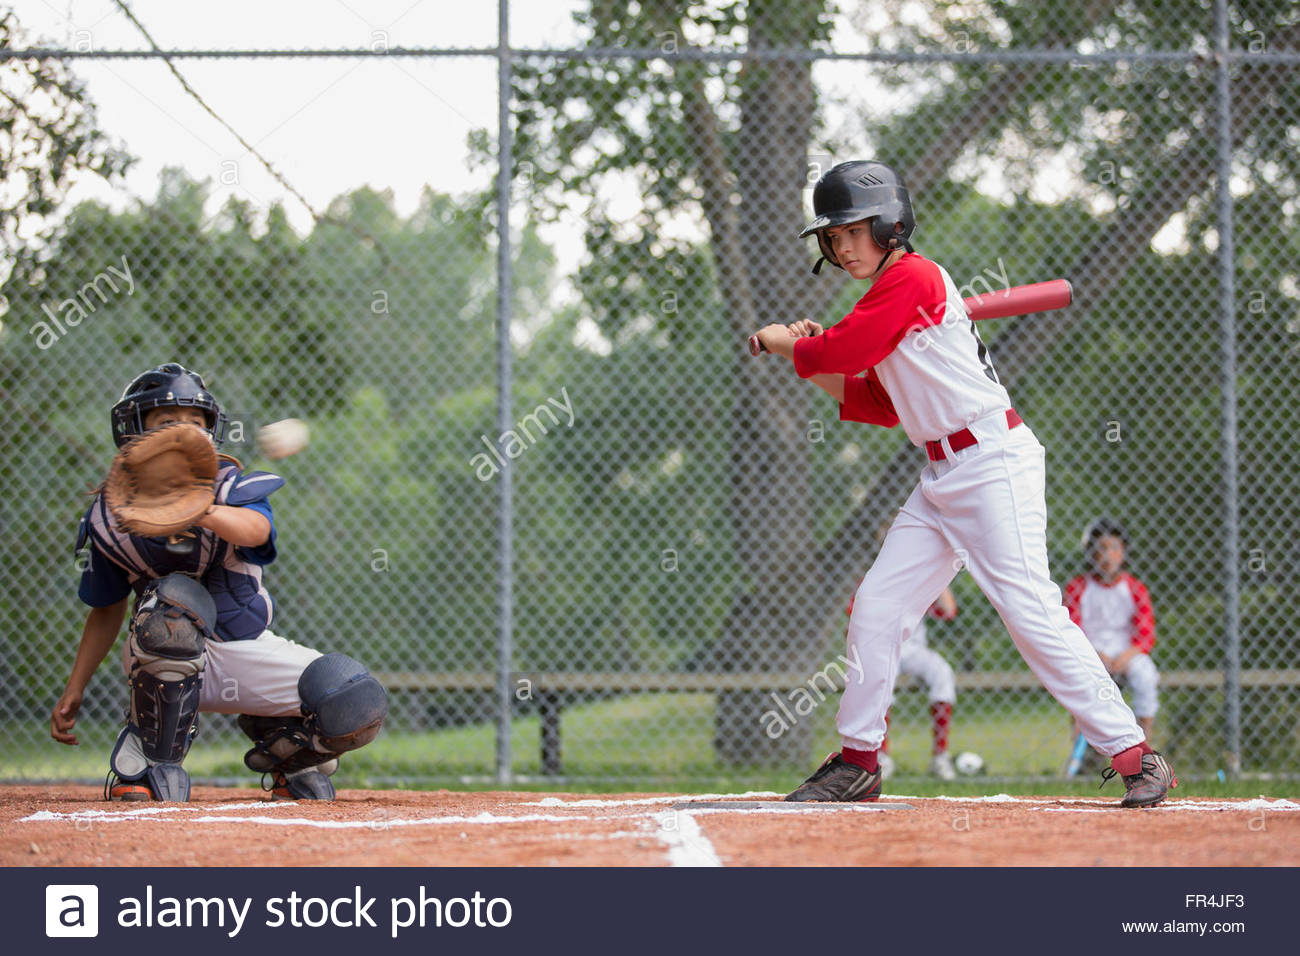 Young ball player watching pitch go past the plate. - Stock Image